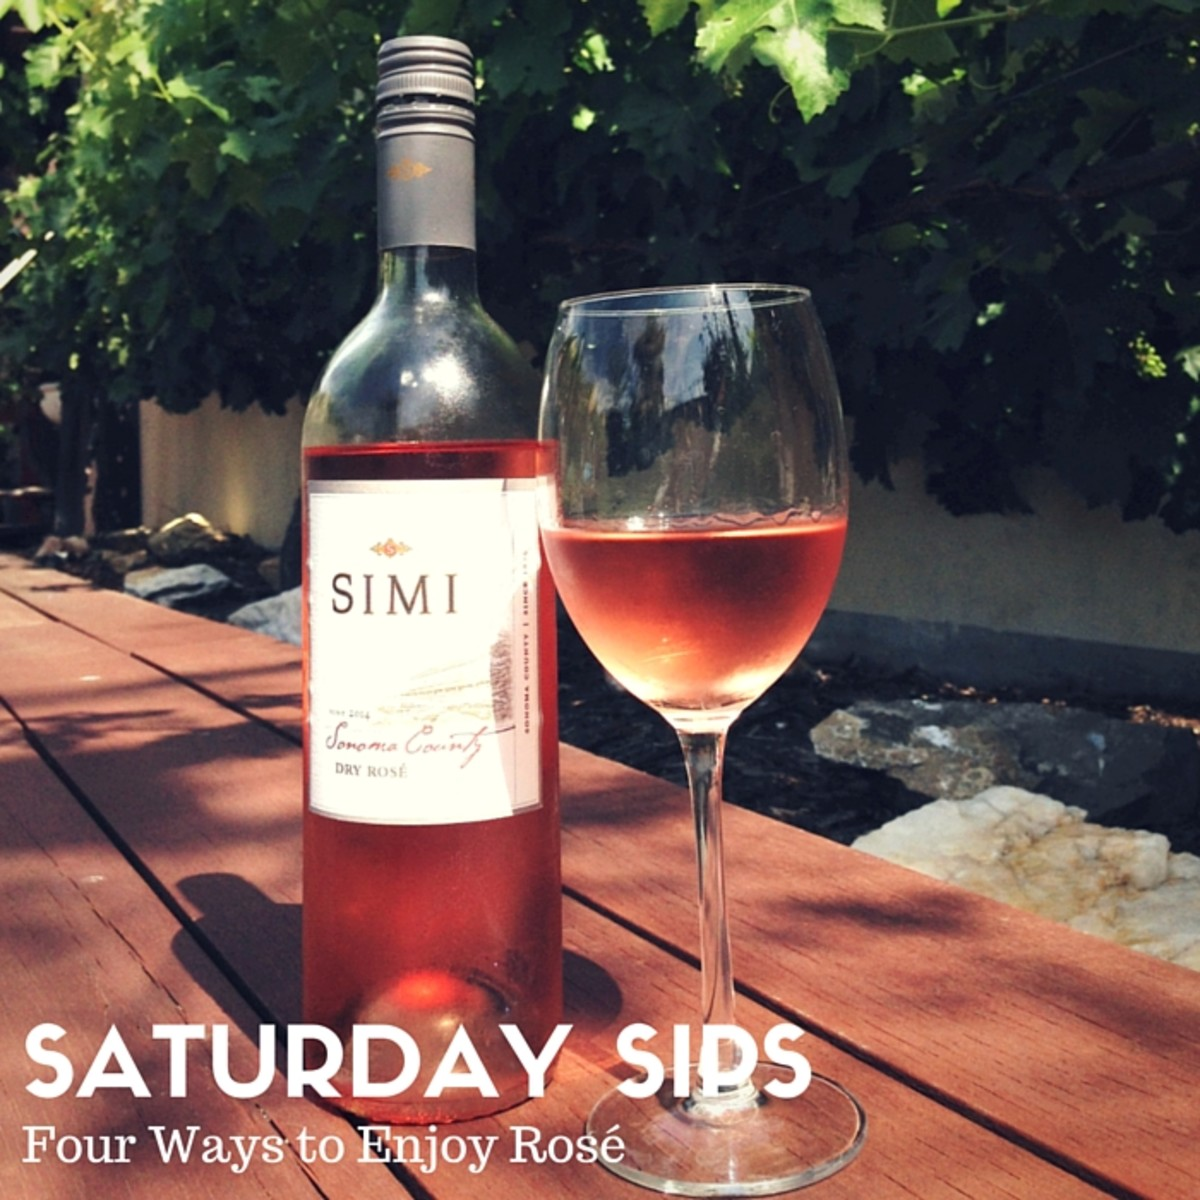 SATURDAY SIPS - Four Ways to Enjoy Rose